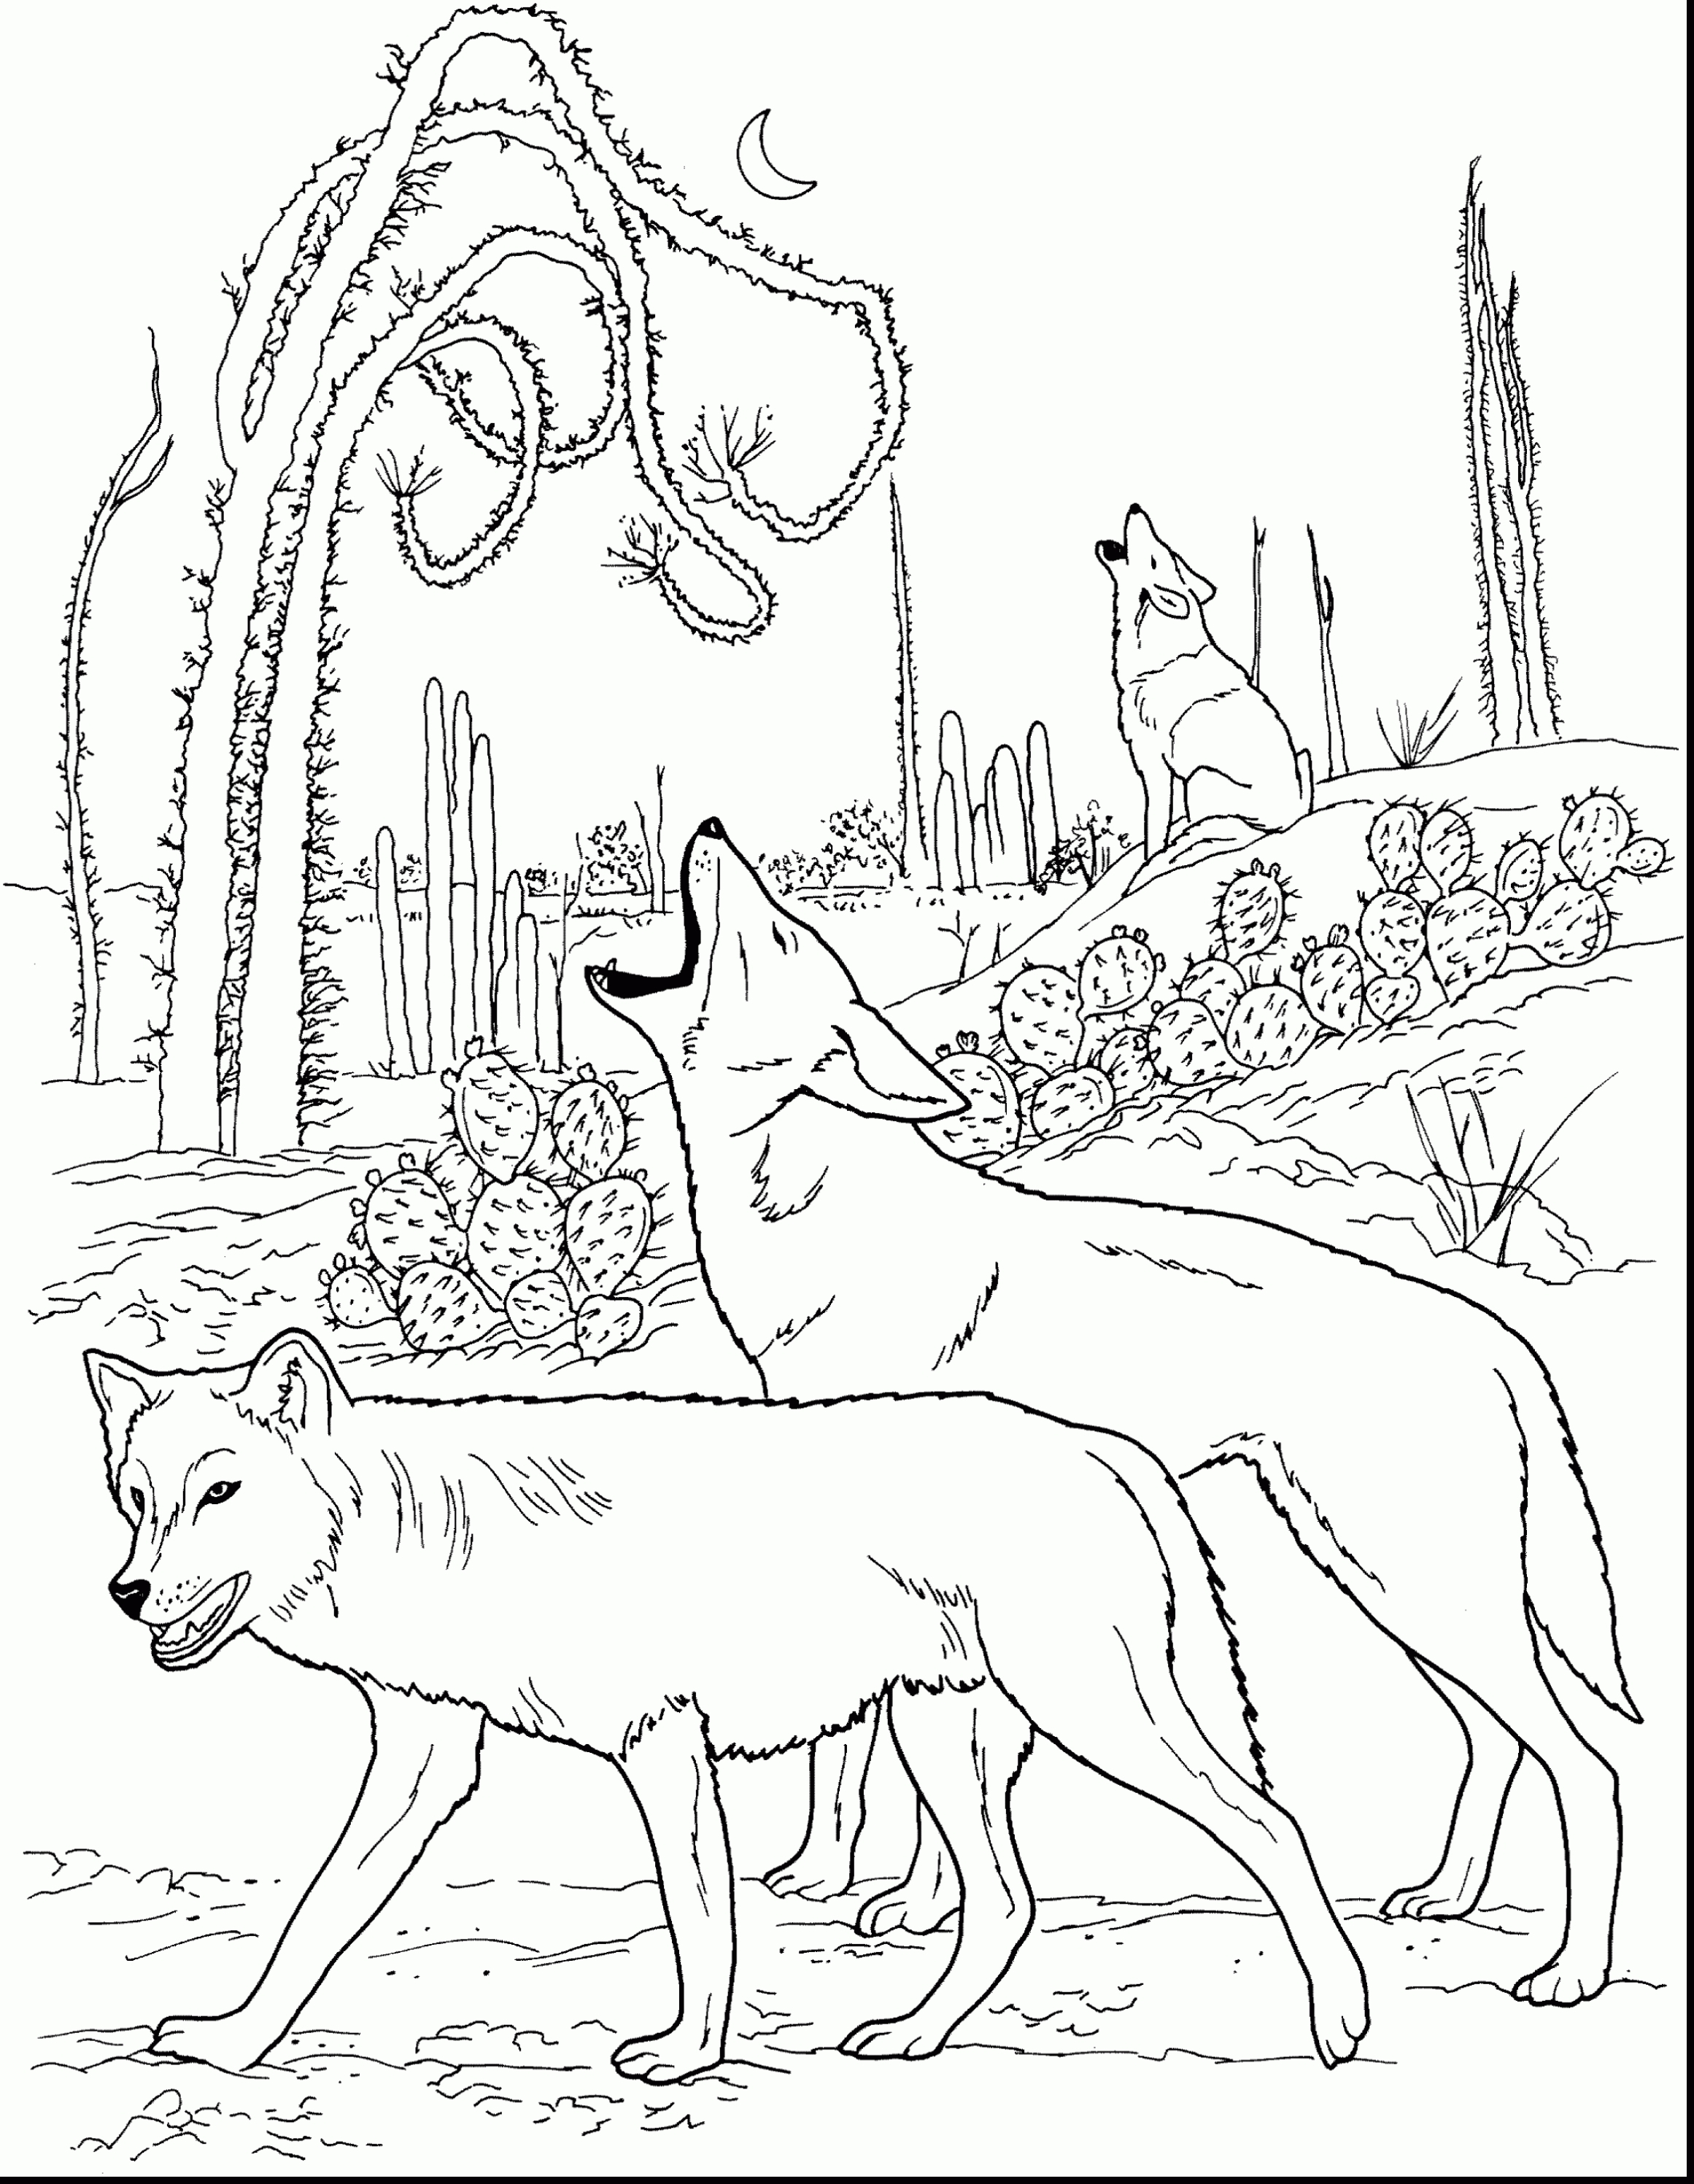 Wolf Pup Coloring Pages Printable Free Coloring Books Gallery Of Wolves Coloring Pages Wolf Coloring Pages Free Coloring Pages Collection